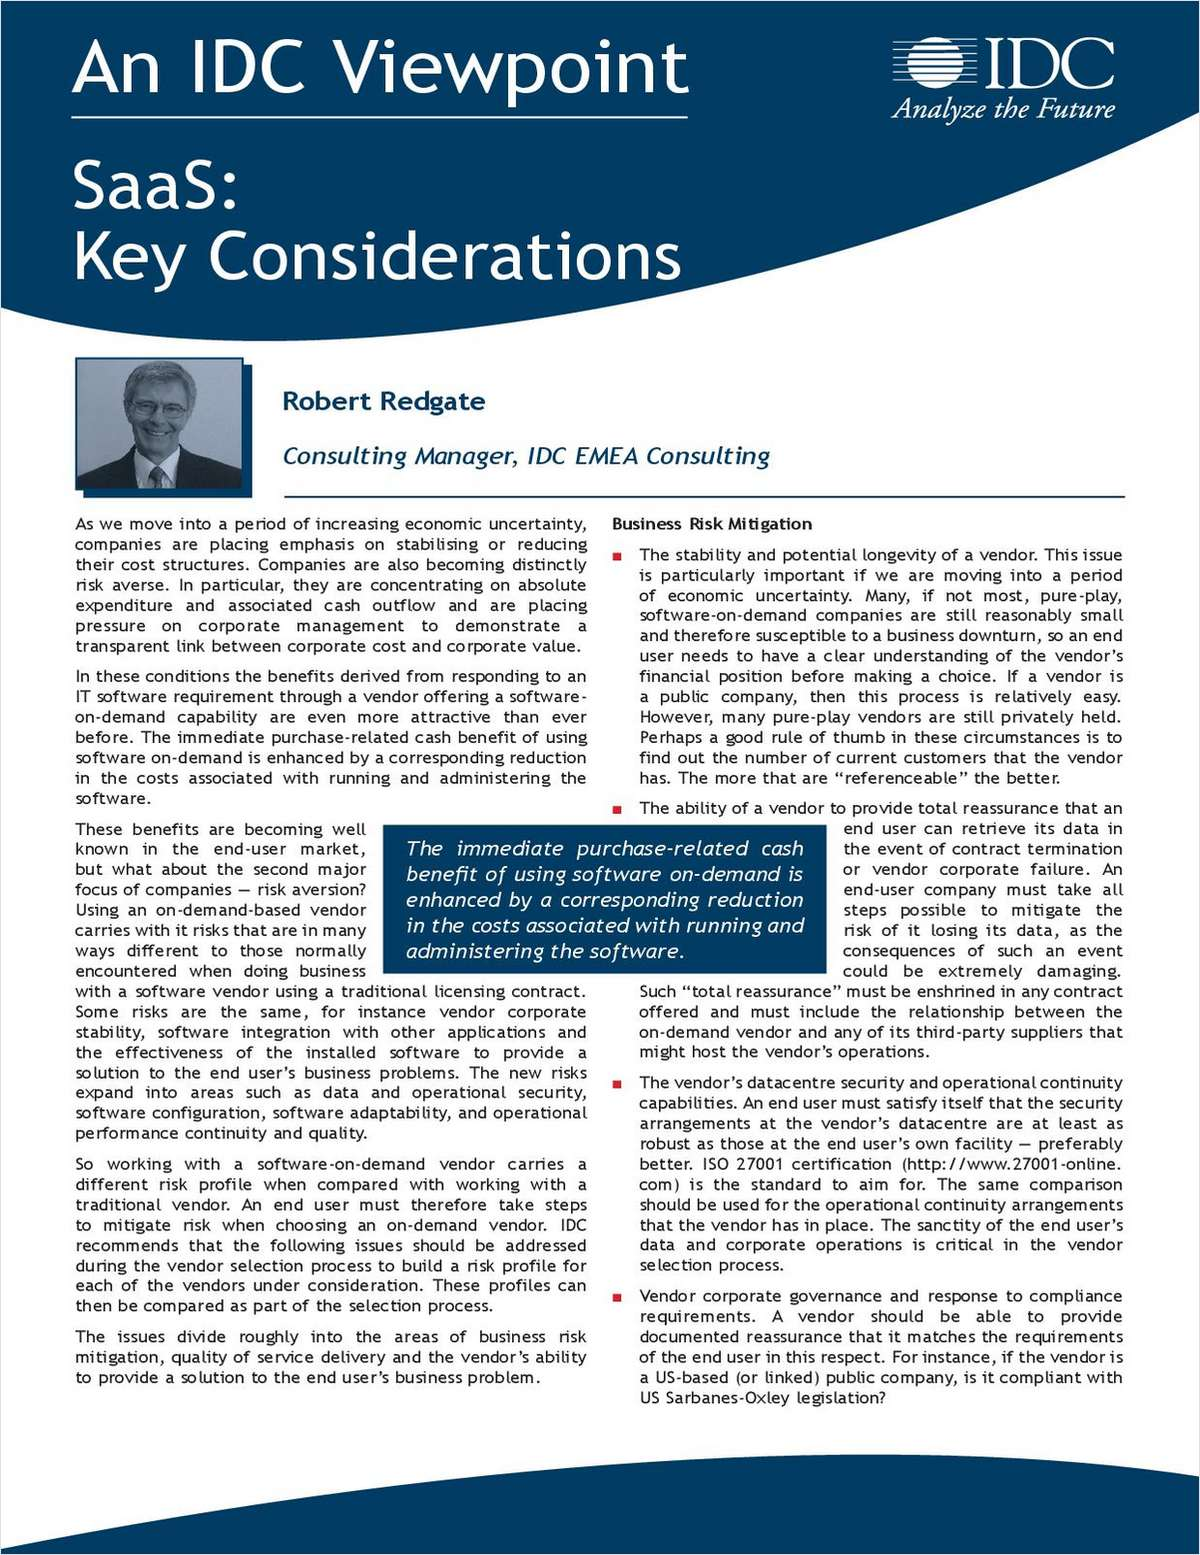 IDC Viewpoint - SaaS: Key Considerations